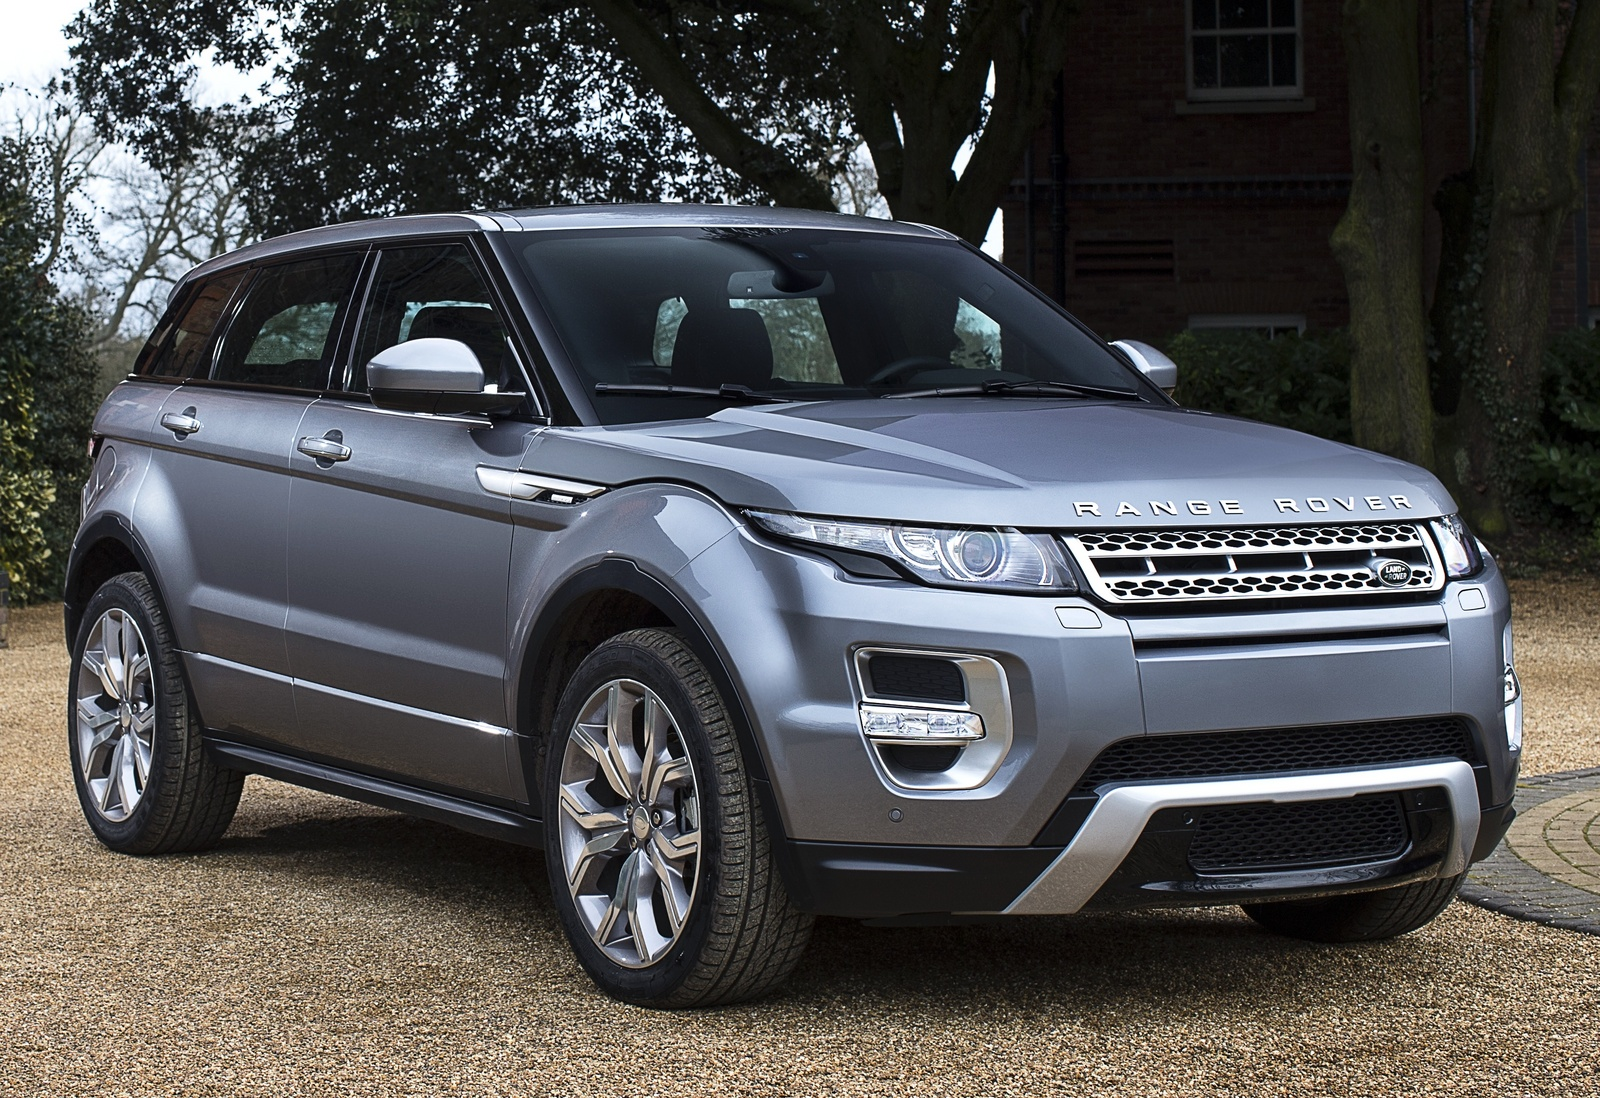 2015 land rover range rover information and photos zombiedrive. Black Bedroom Furniture Sets. Home Design Ideas